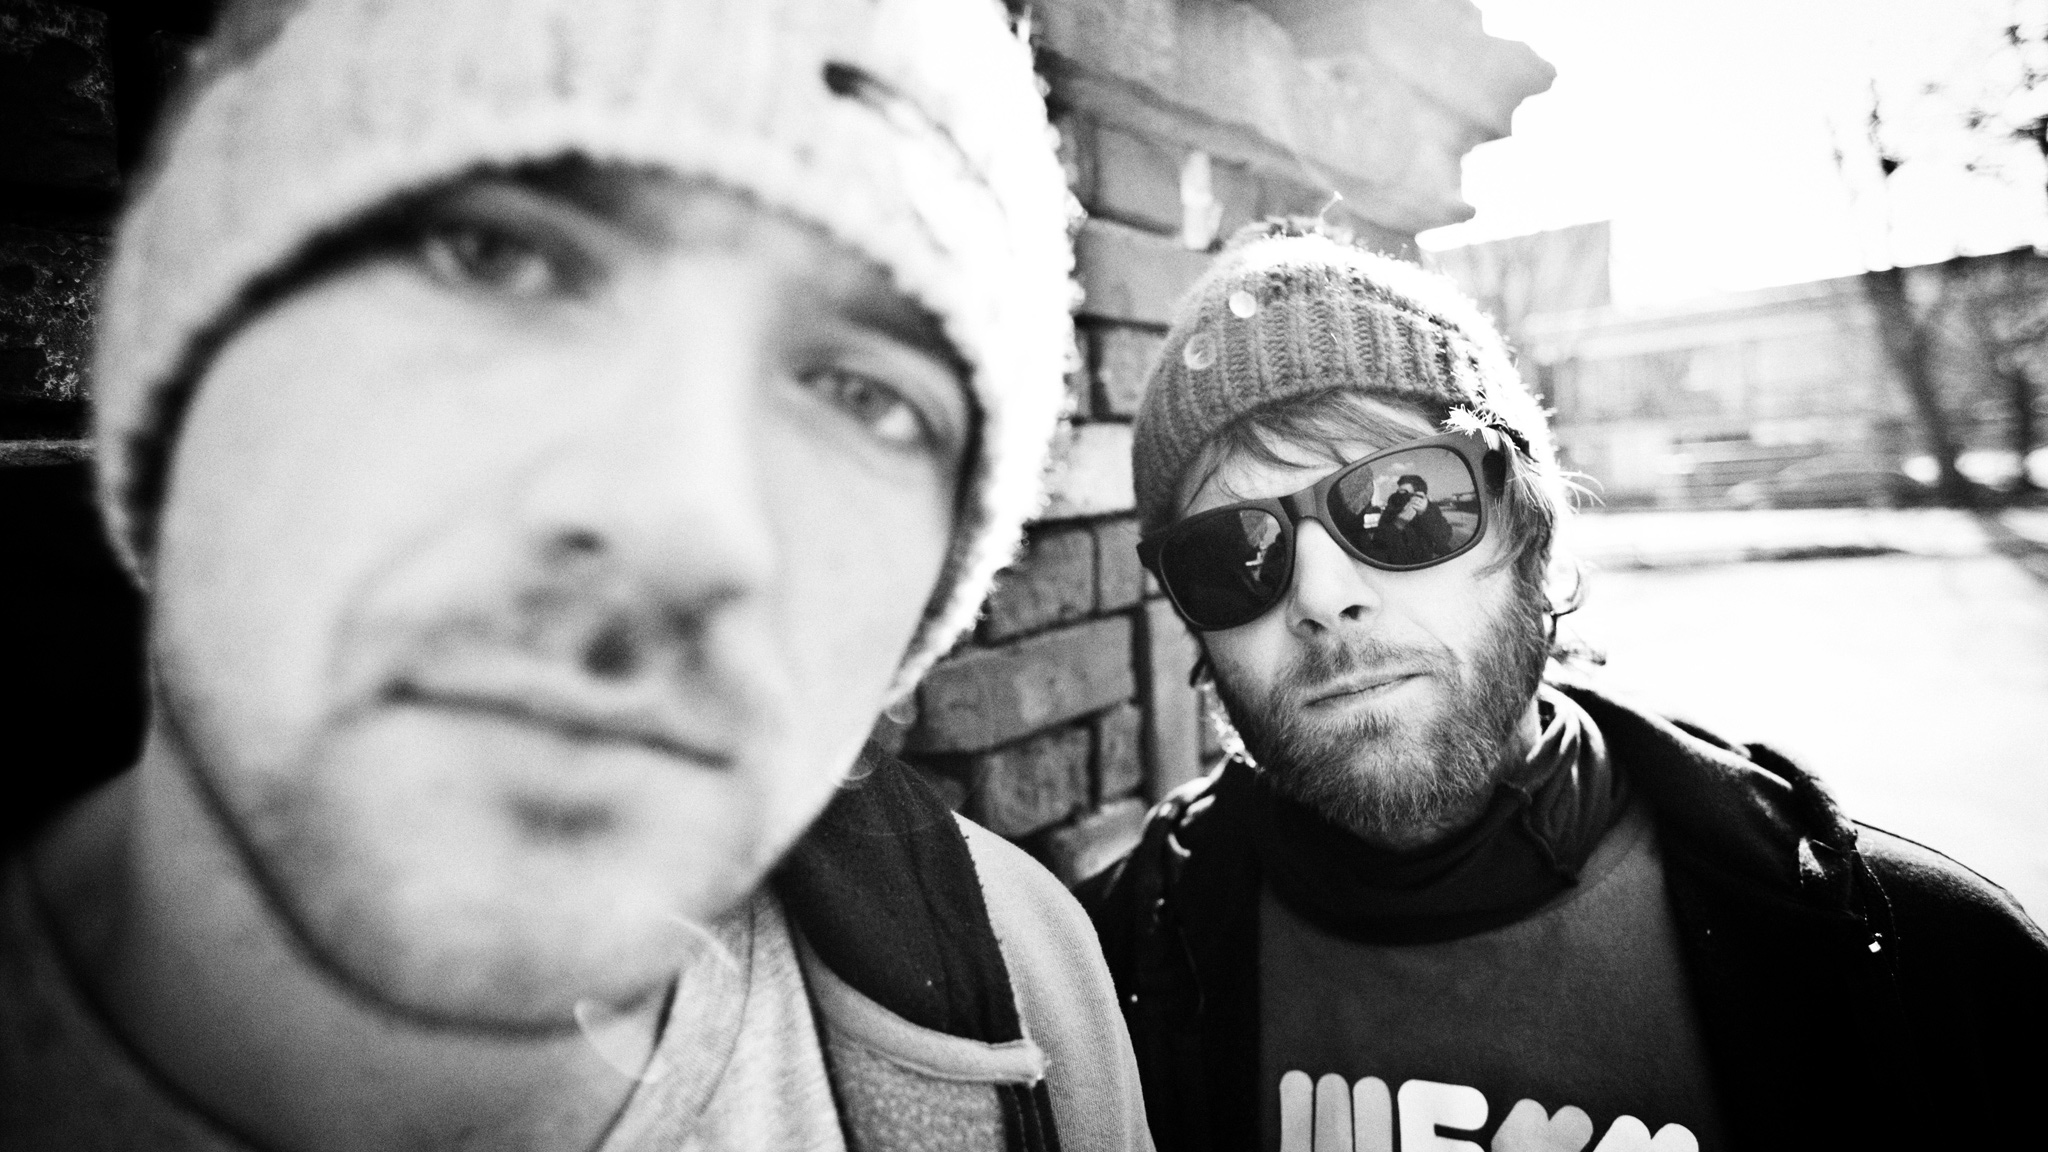 Maniac (L) and Rufflow (R) have been layering beats and lyrics together for nearly a decade.